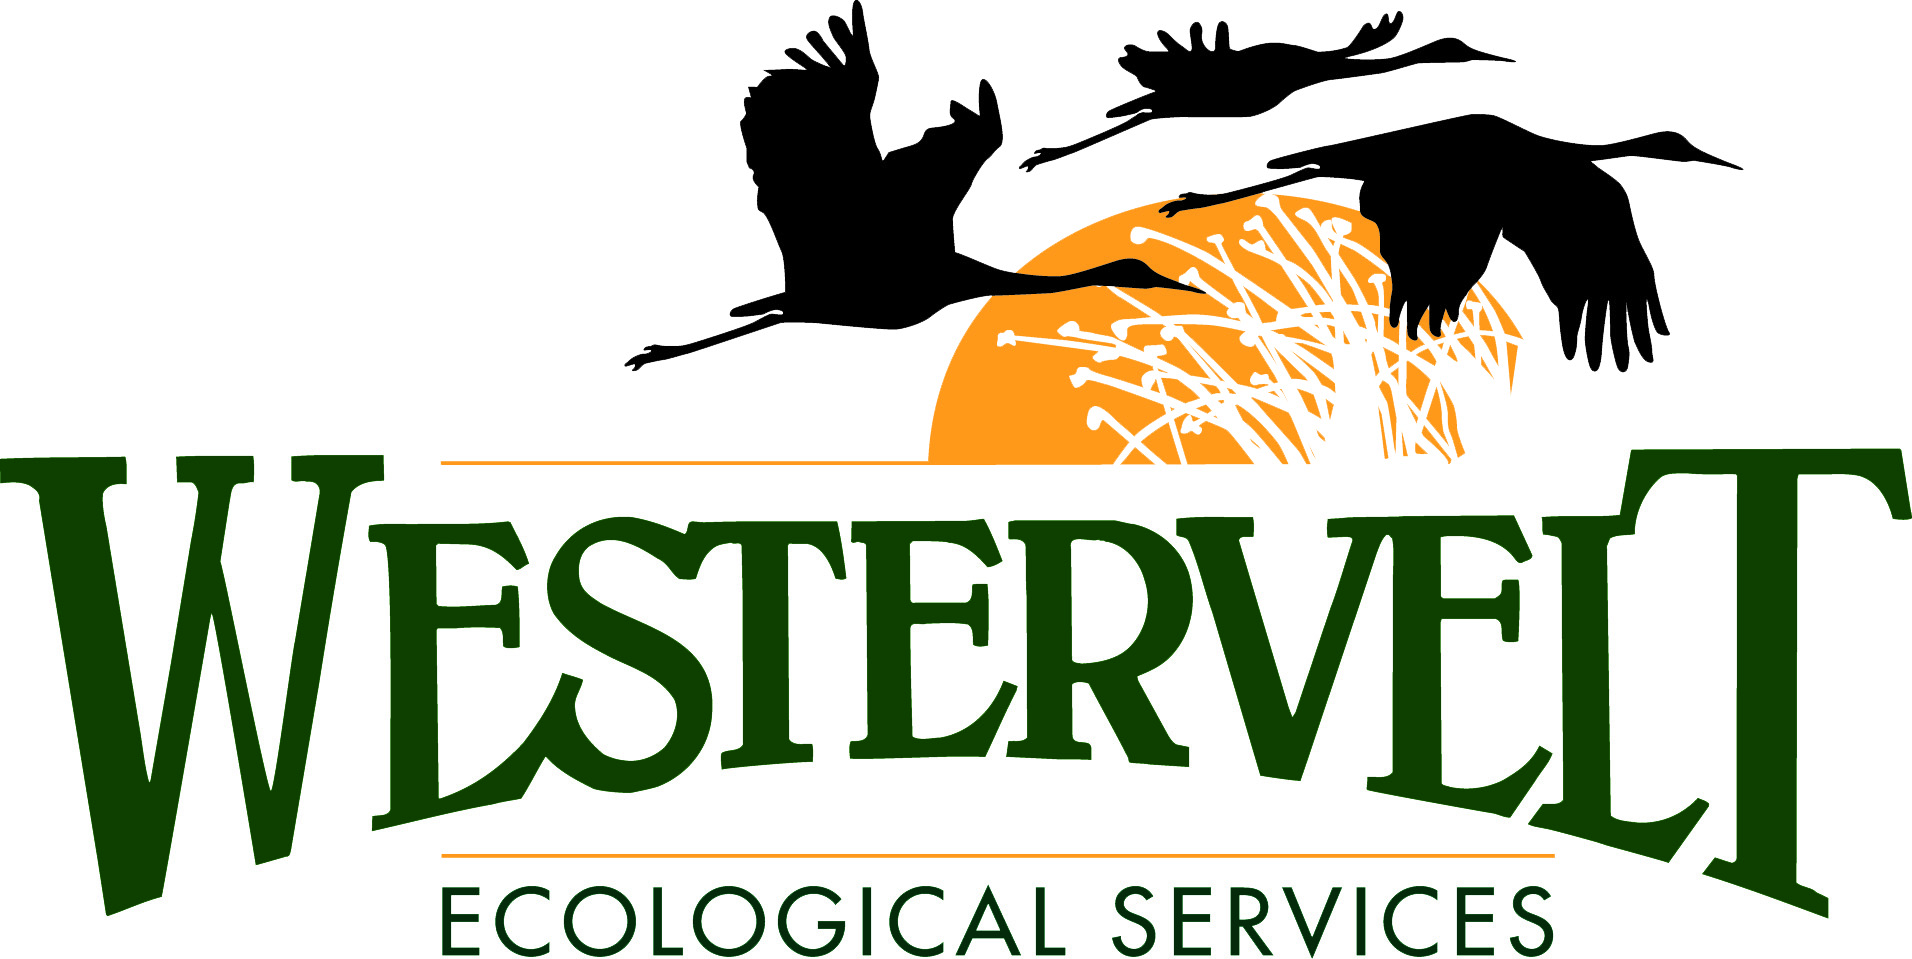 Westervelt Ecological Services